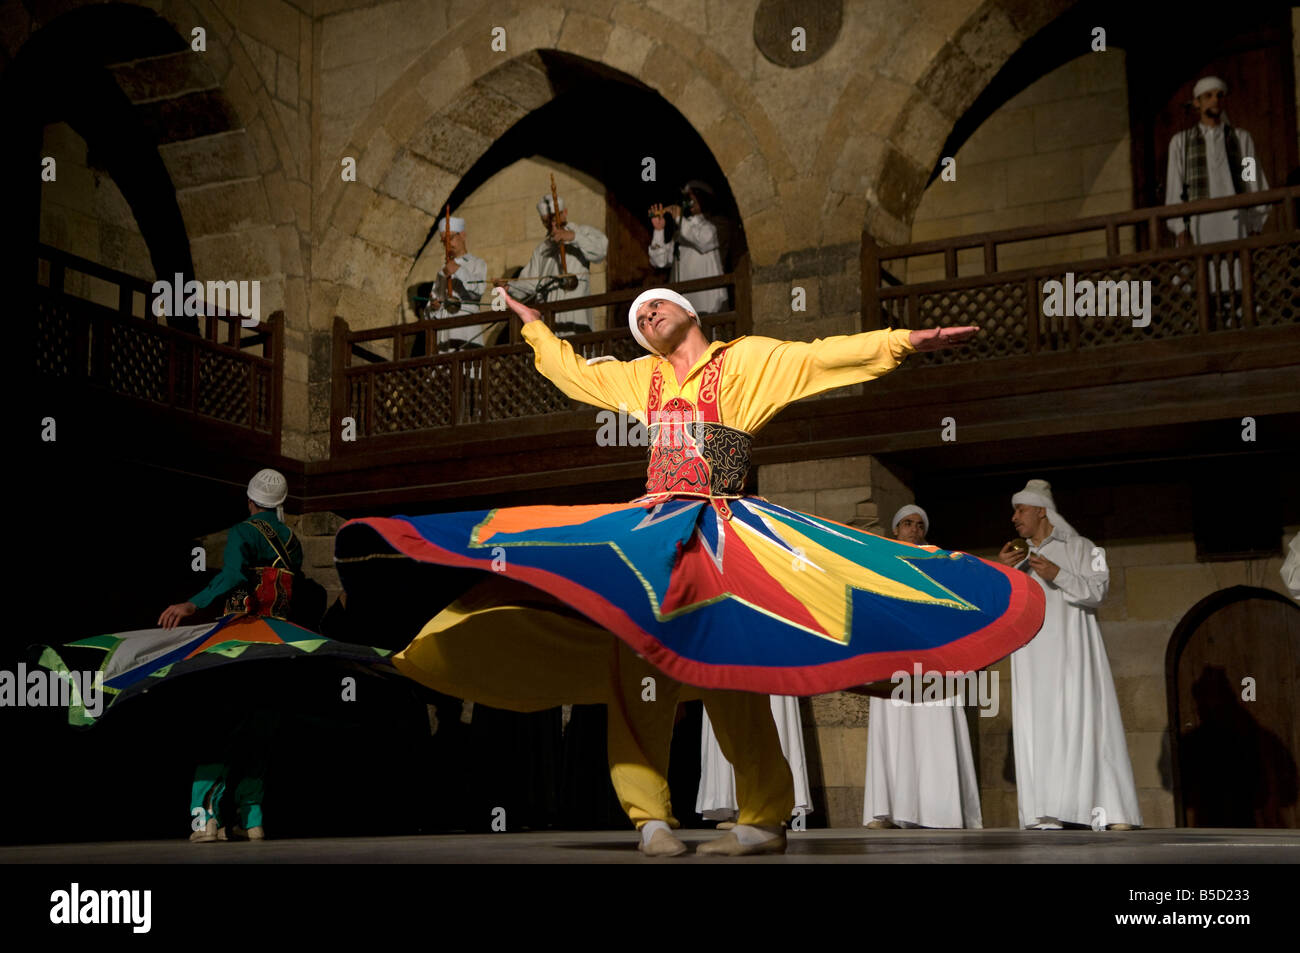 Whirling Dervish or Darvish performance of al tannoura Egyptian heritage dance troupe at the Wekalet el Ghouri Arts - Stock Image